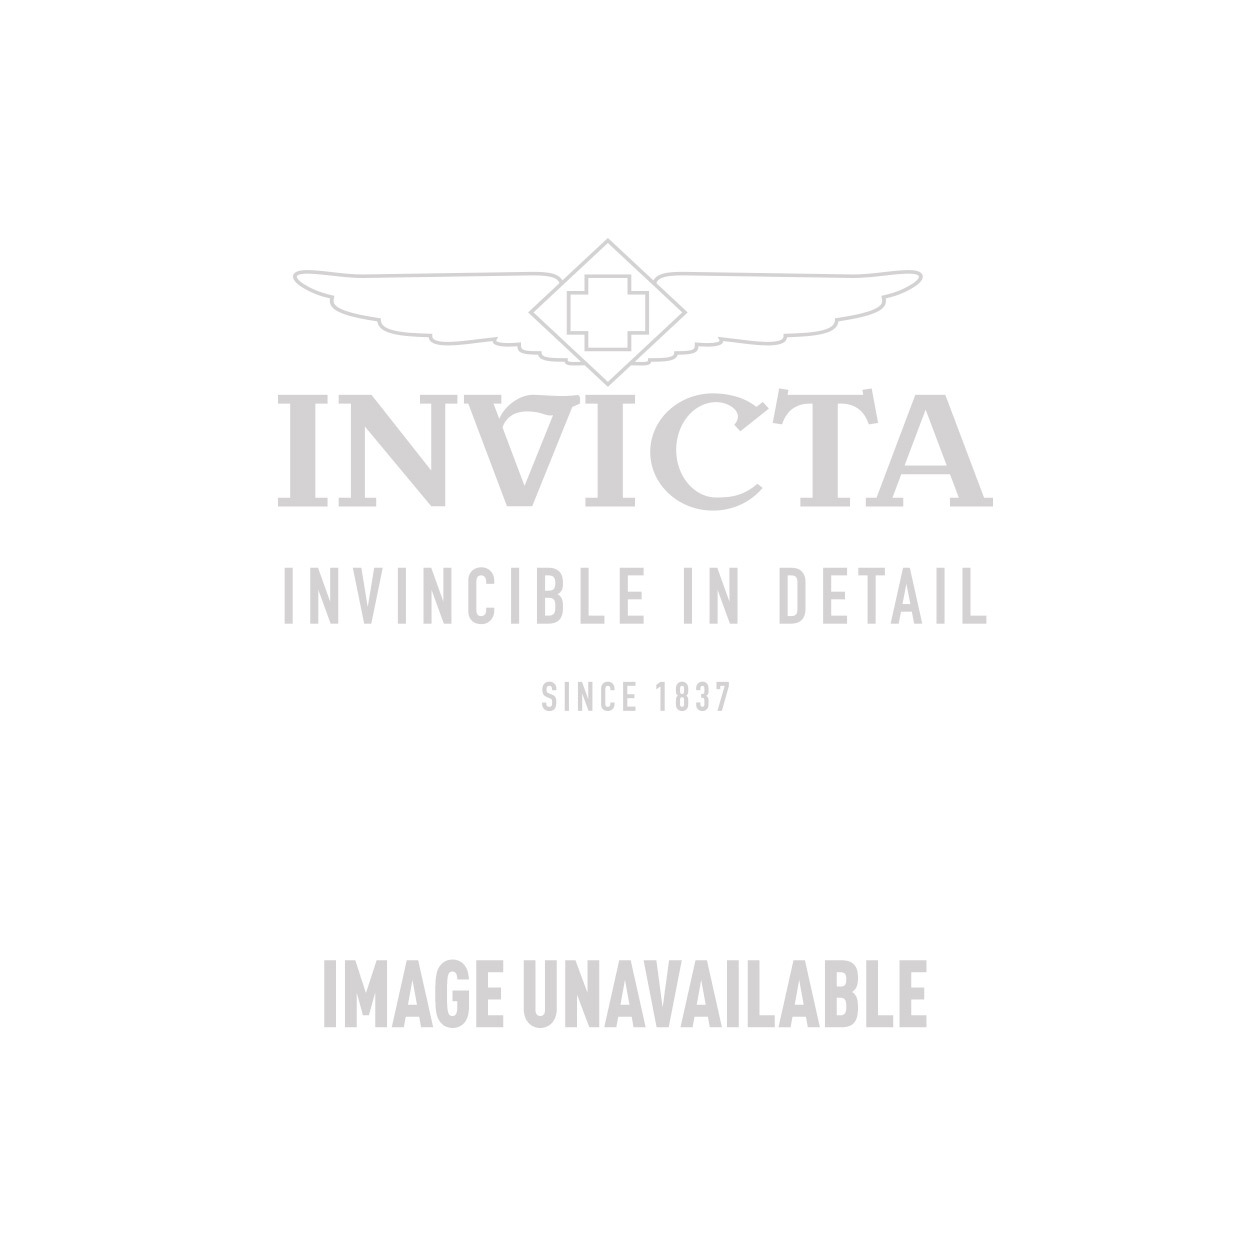 b05410684 Invicta S1 Rally watch in Stainless Steel at InvictaStores.com